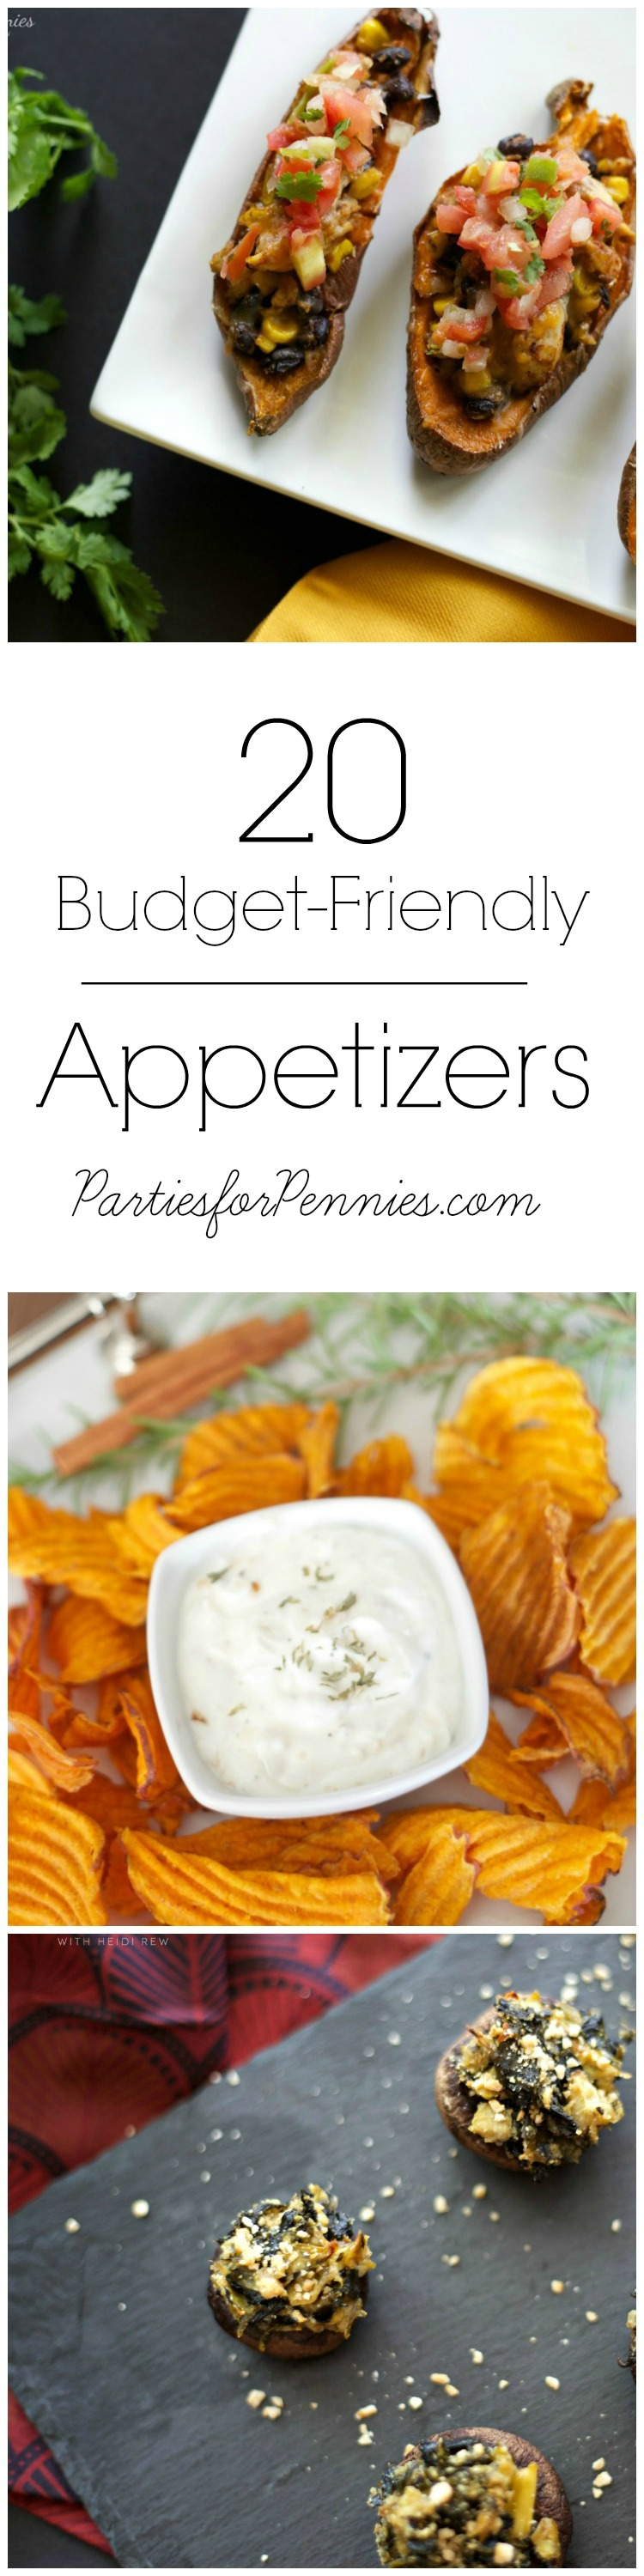 20 Budget-Friendly Appetizers by PartiesforPennies.com